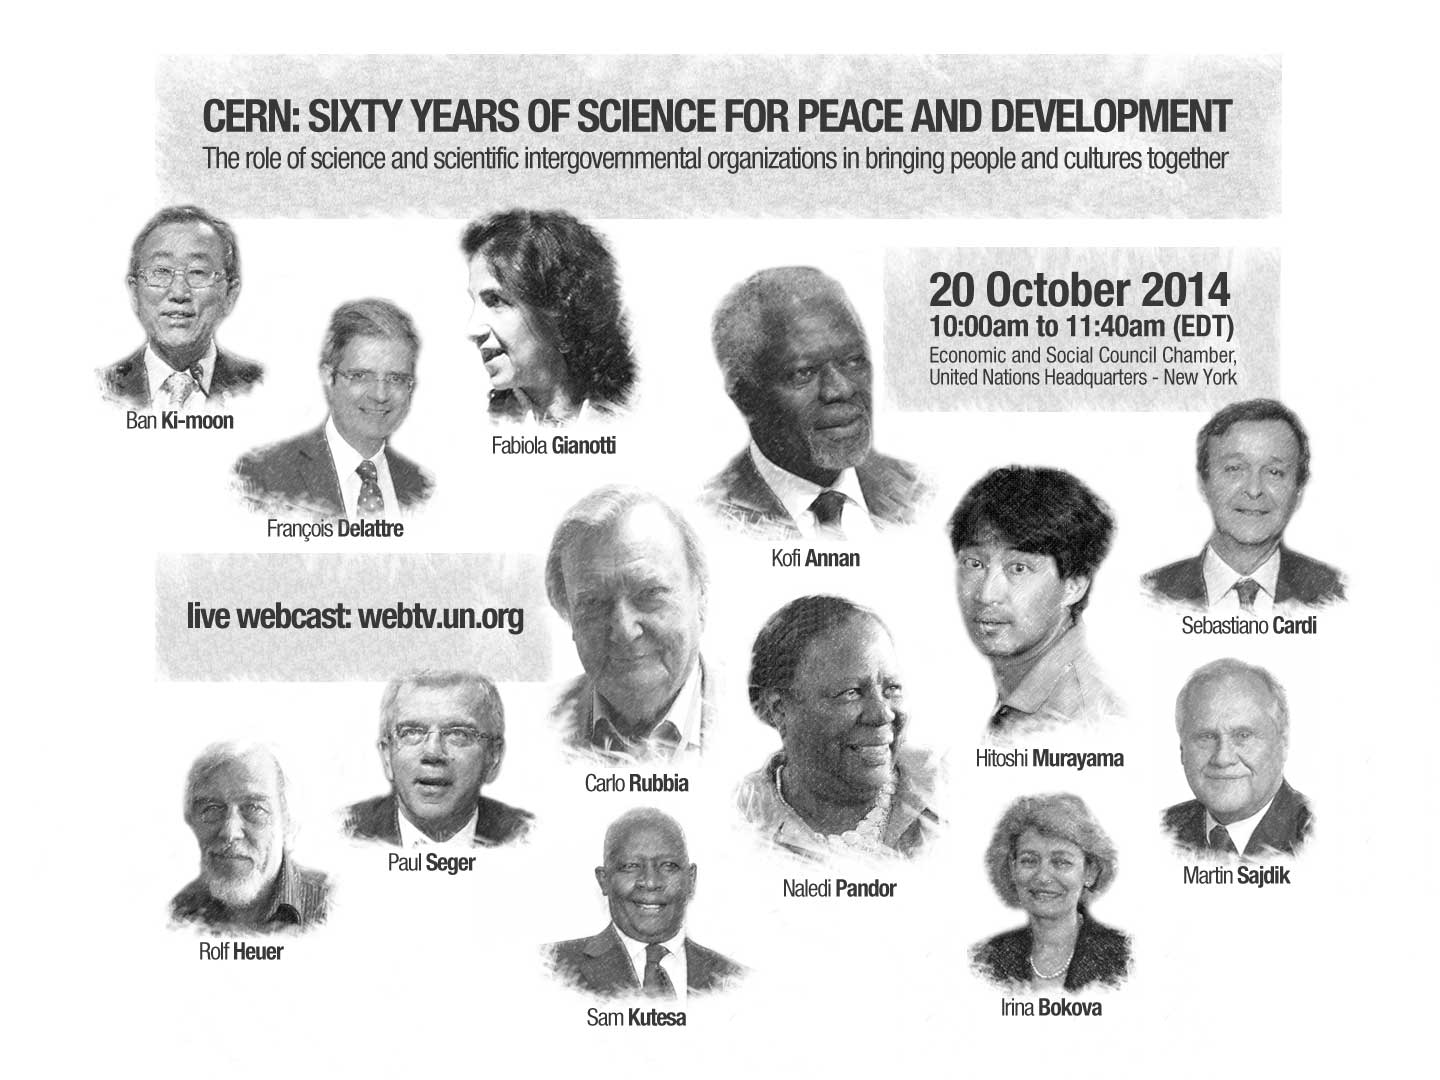 celebrating science for peace and development with the un cern